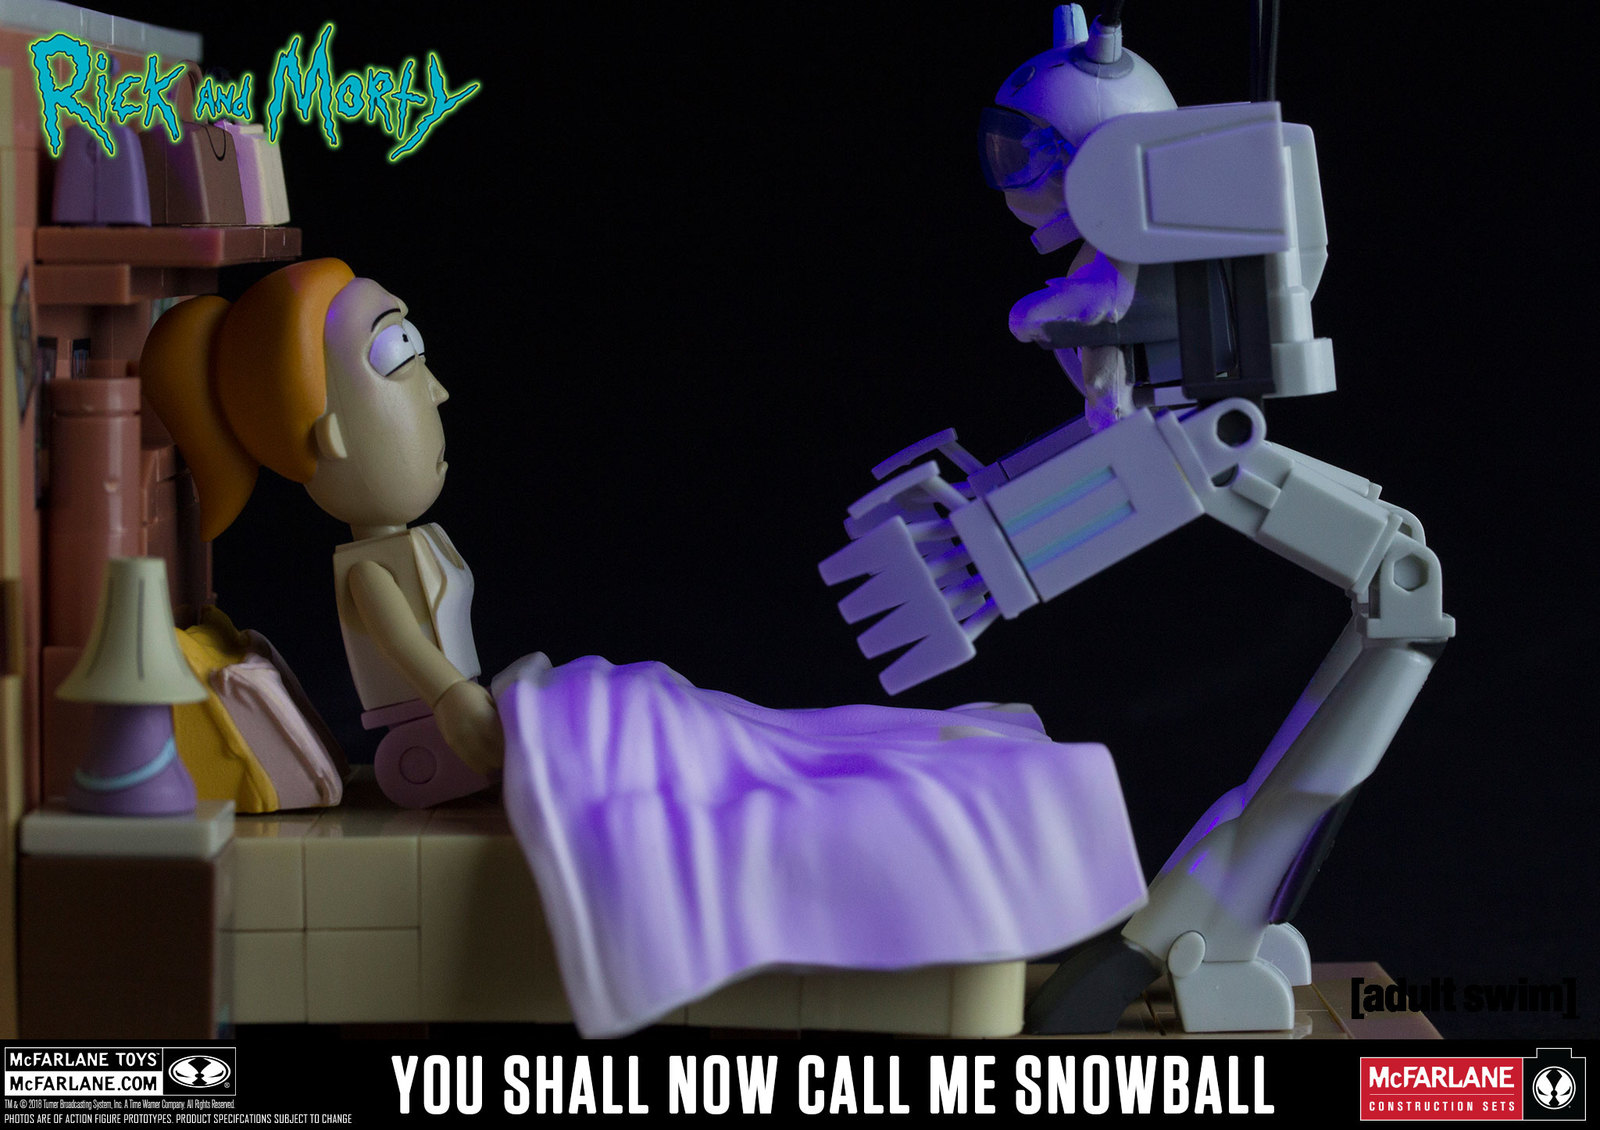 Rick and Morty: You Shall Now Call Me Snowball - Medium Construction Set image